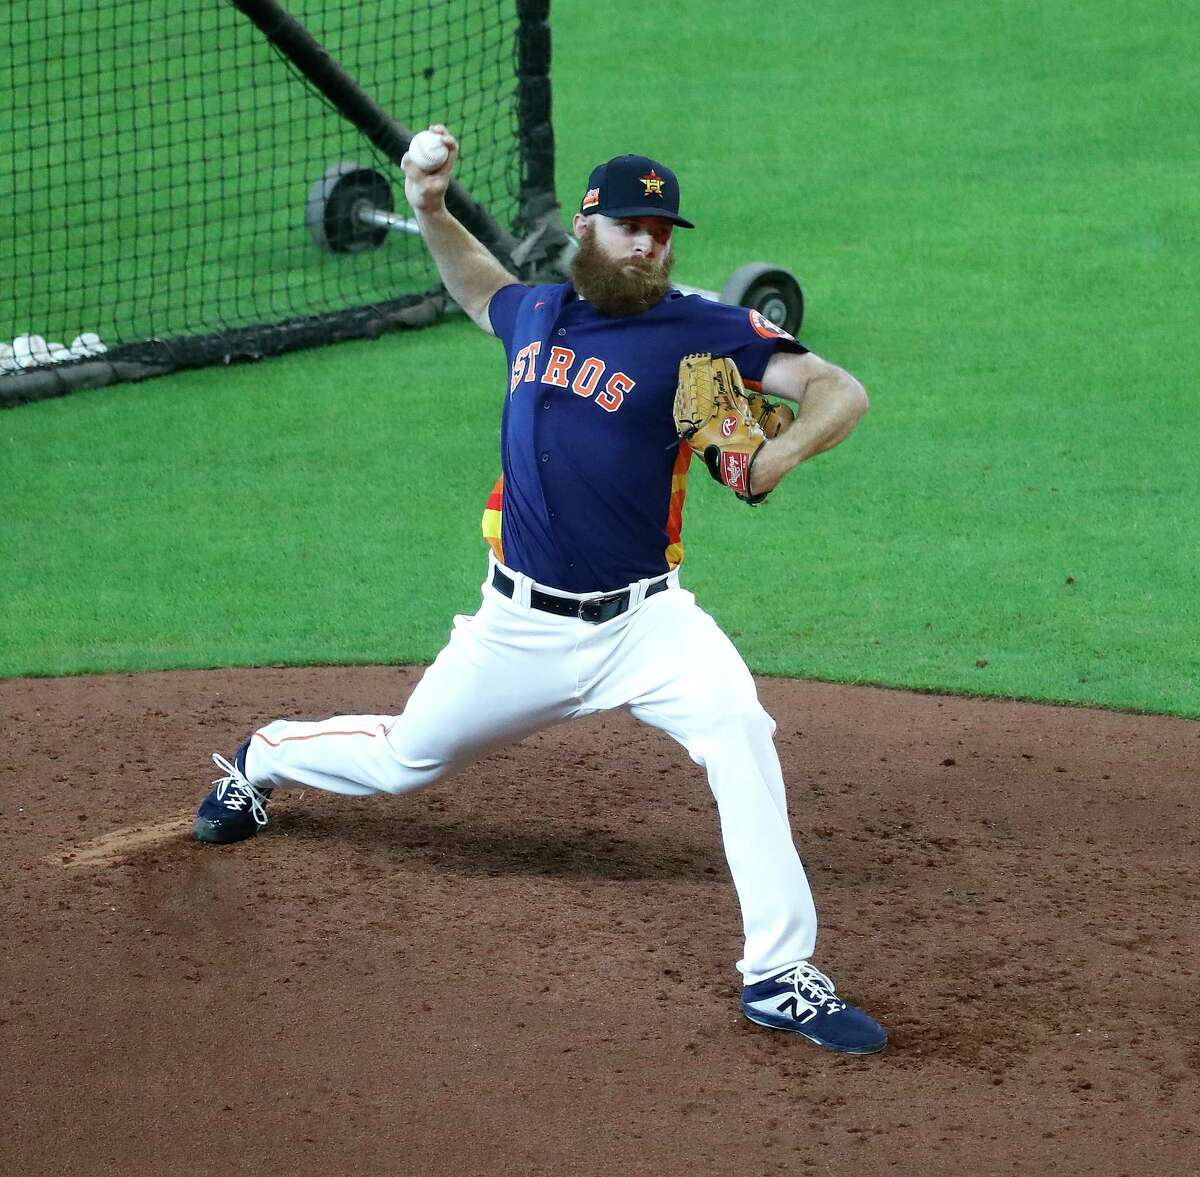 Houston Astros pitcher Cy Sneed pitches a live batting practice session during the Astros summer camp at Minute Maid Park, Tuesday, July 7, 2020, in Houston.